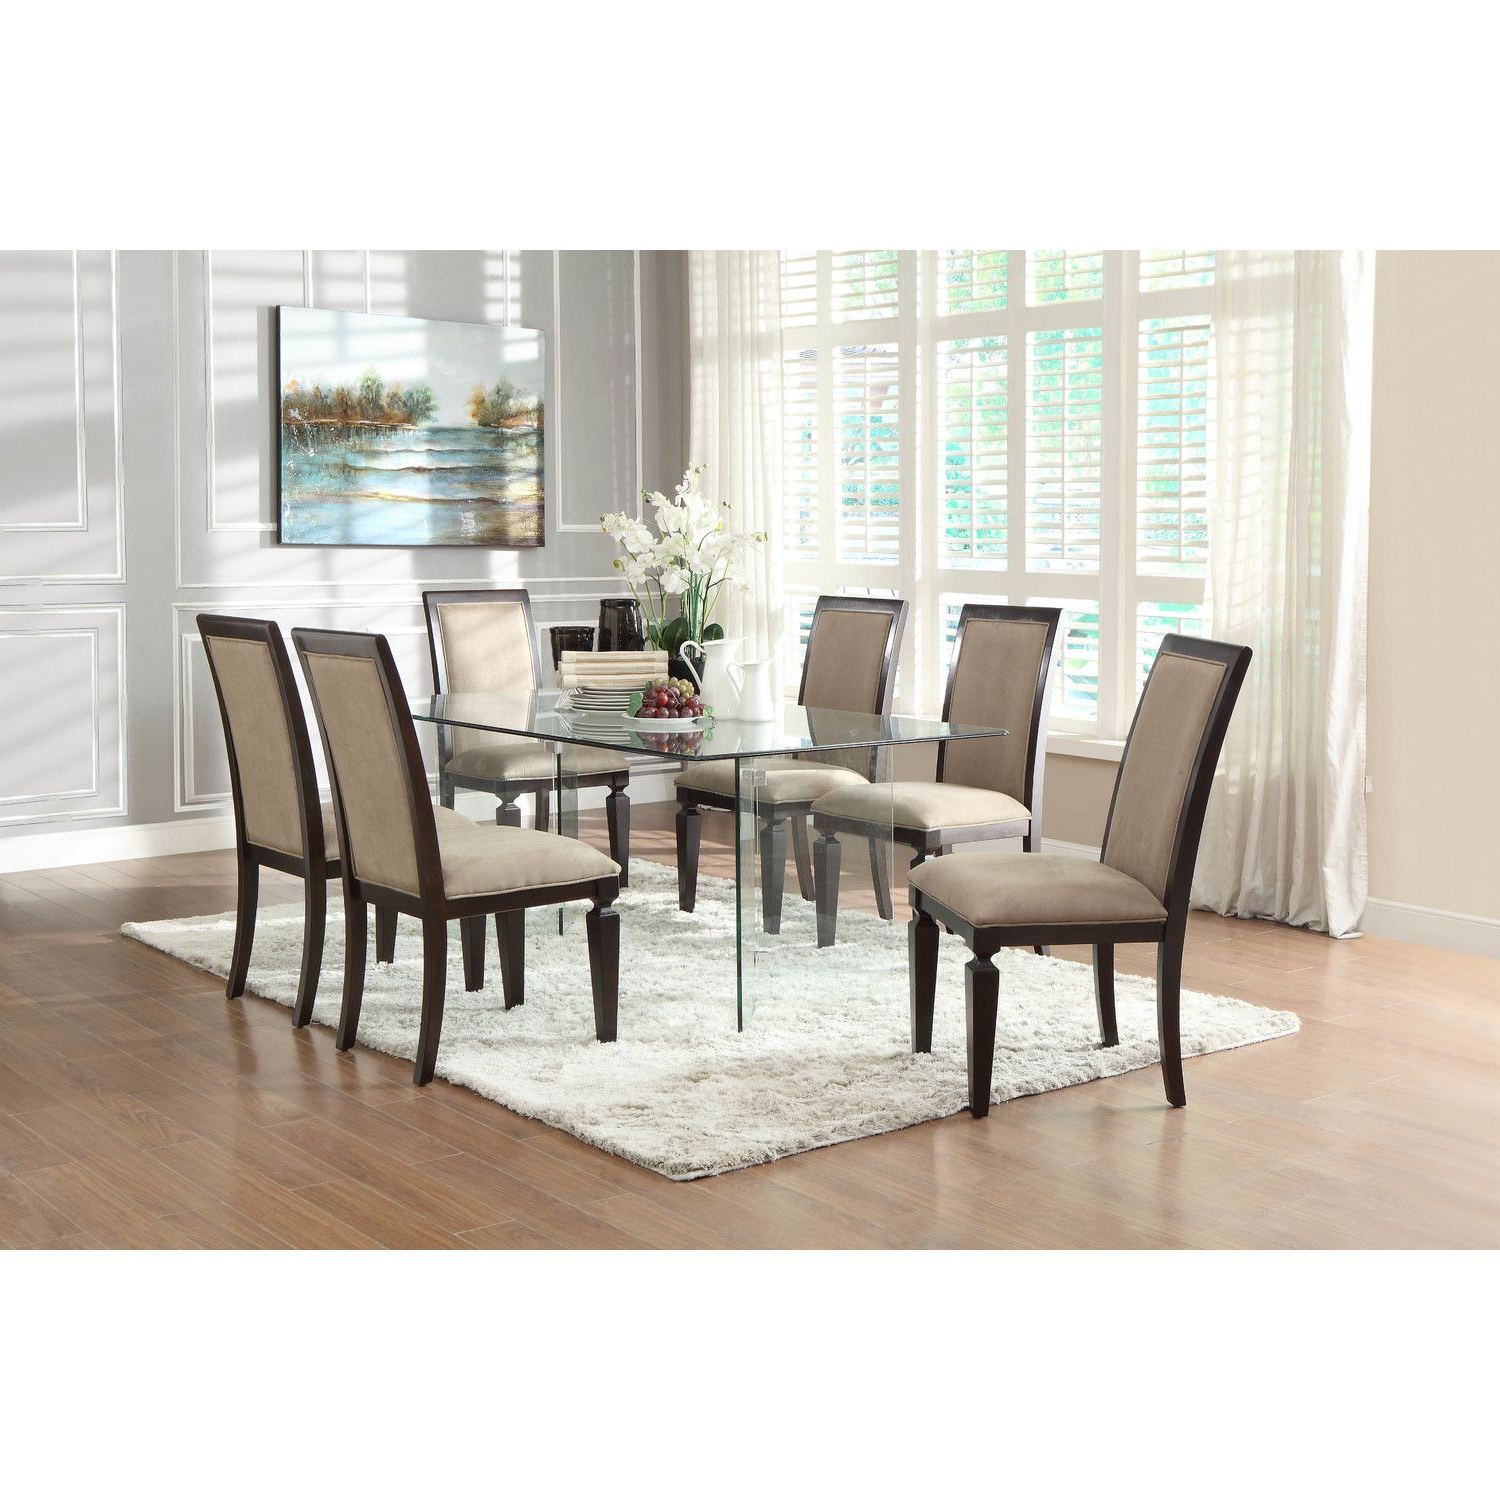 Dining with Latest Ephraim 5 Piece Dining Sets